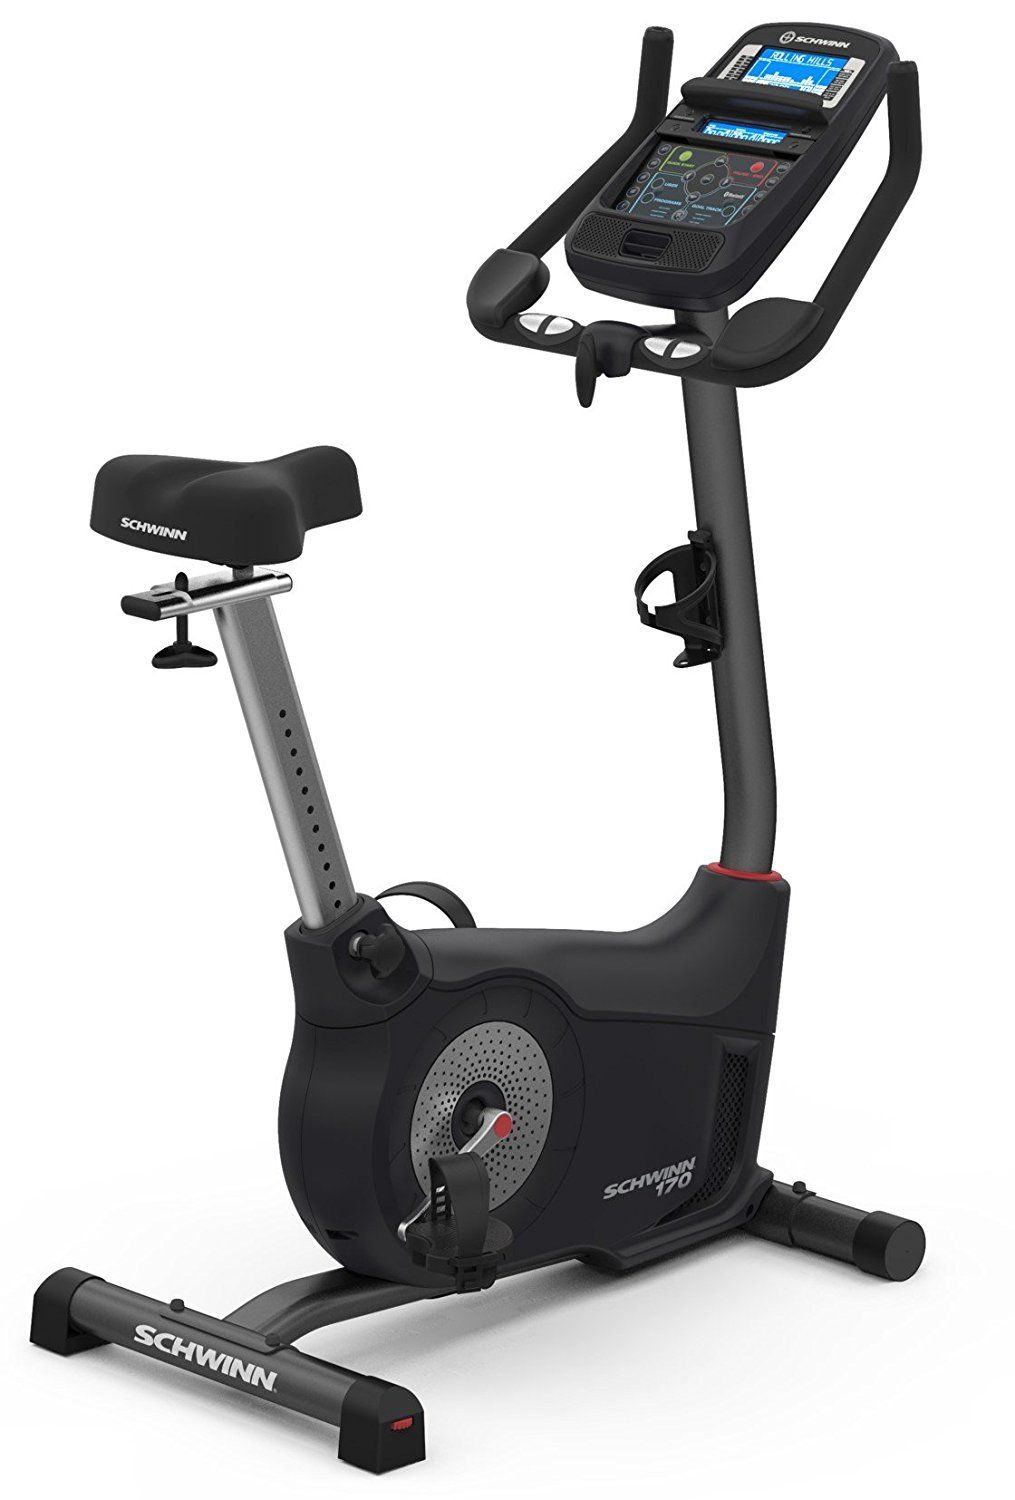 Top 10 Best Upright Exercise Bikes In 2020 Upright Exercise Bike